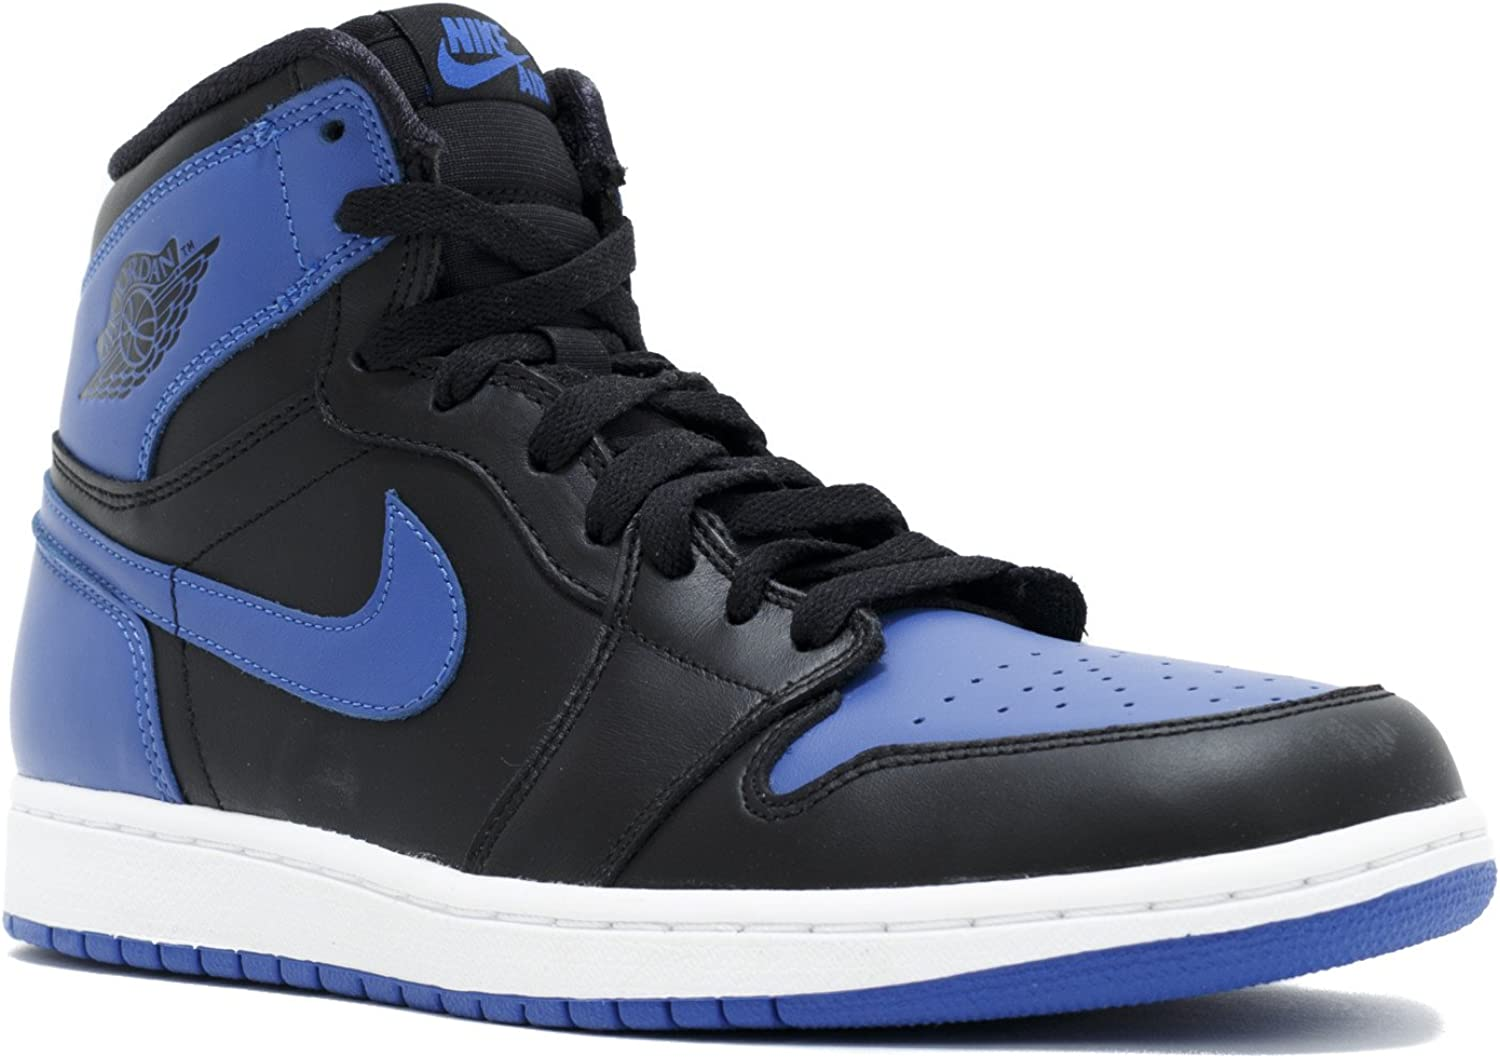 Amazon.com: Air Jordan 1 Retro High OG 085 14: Shoes